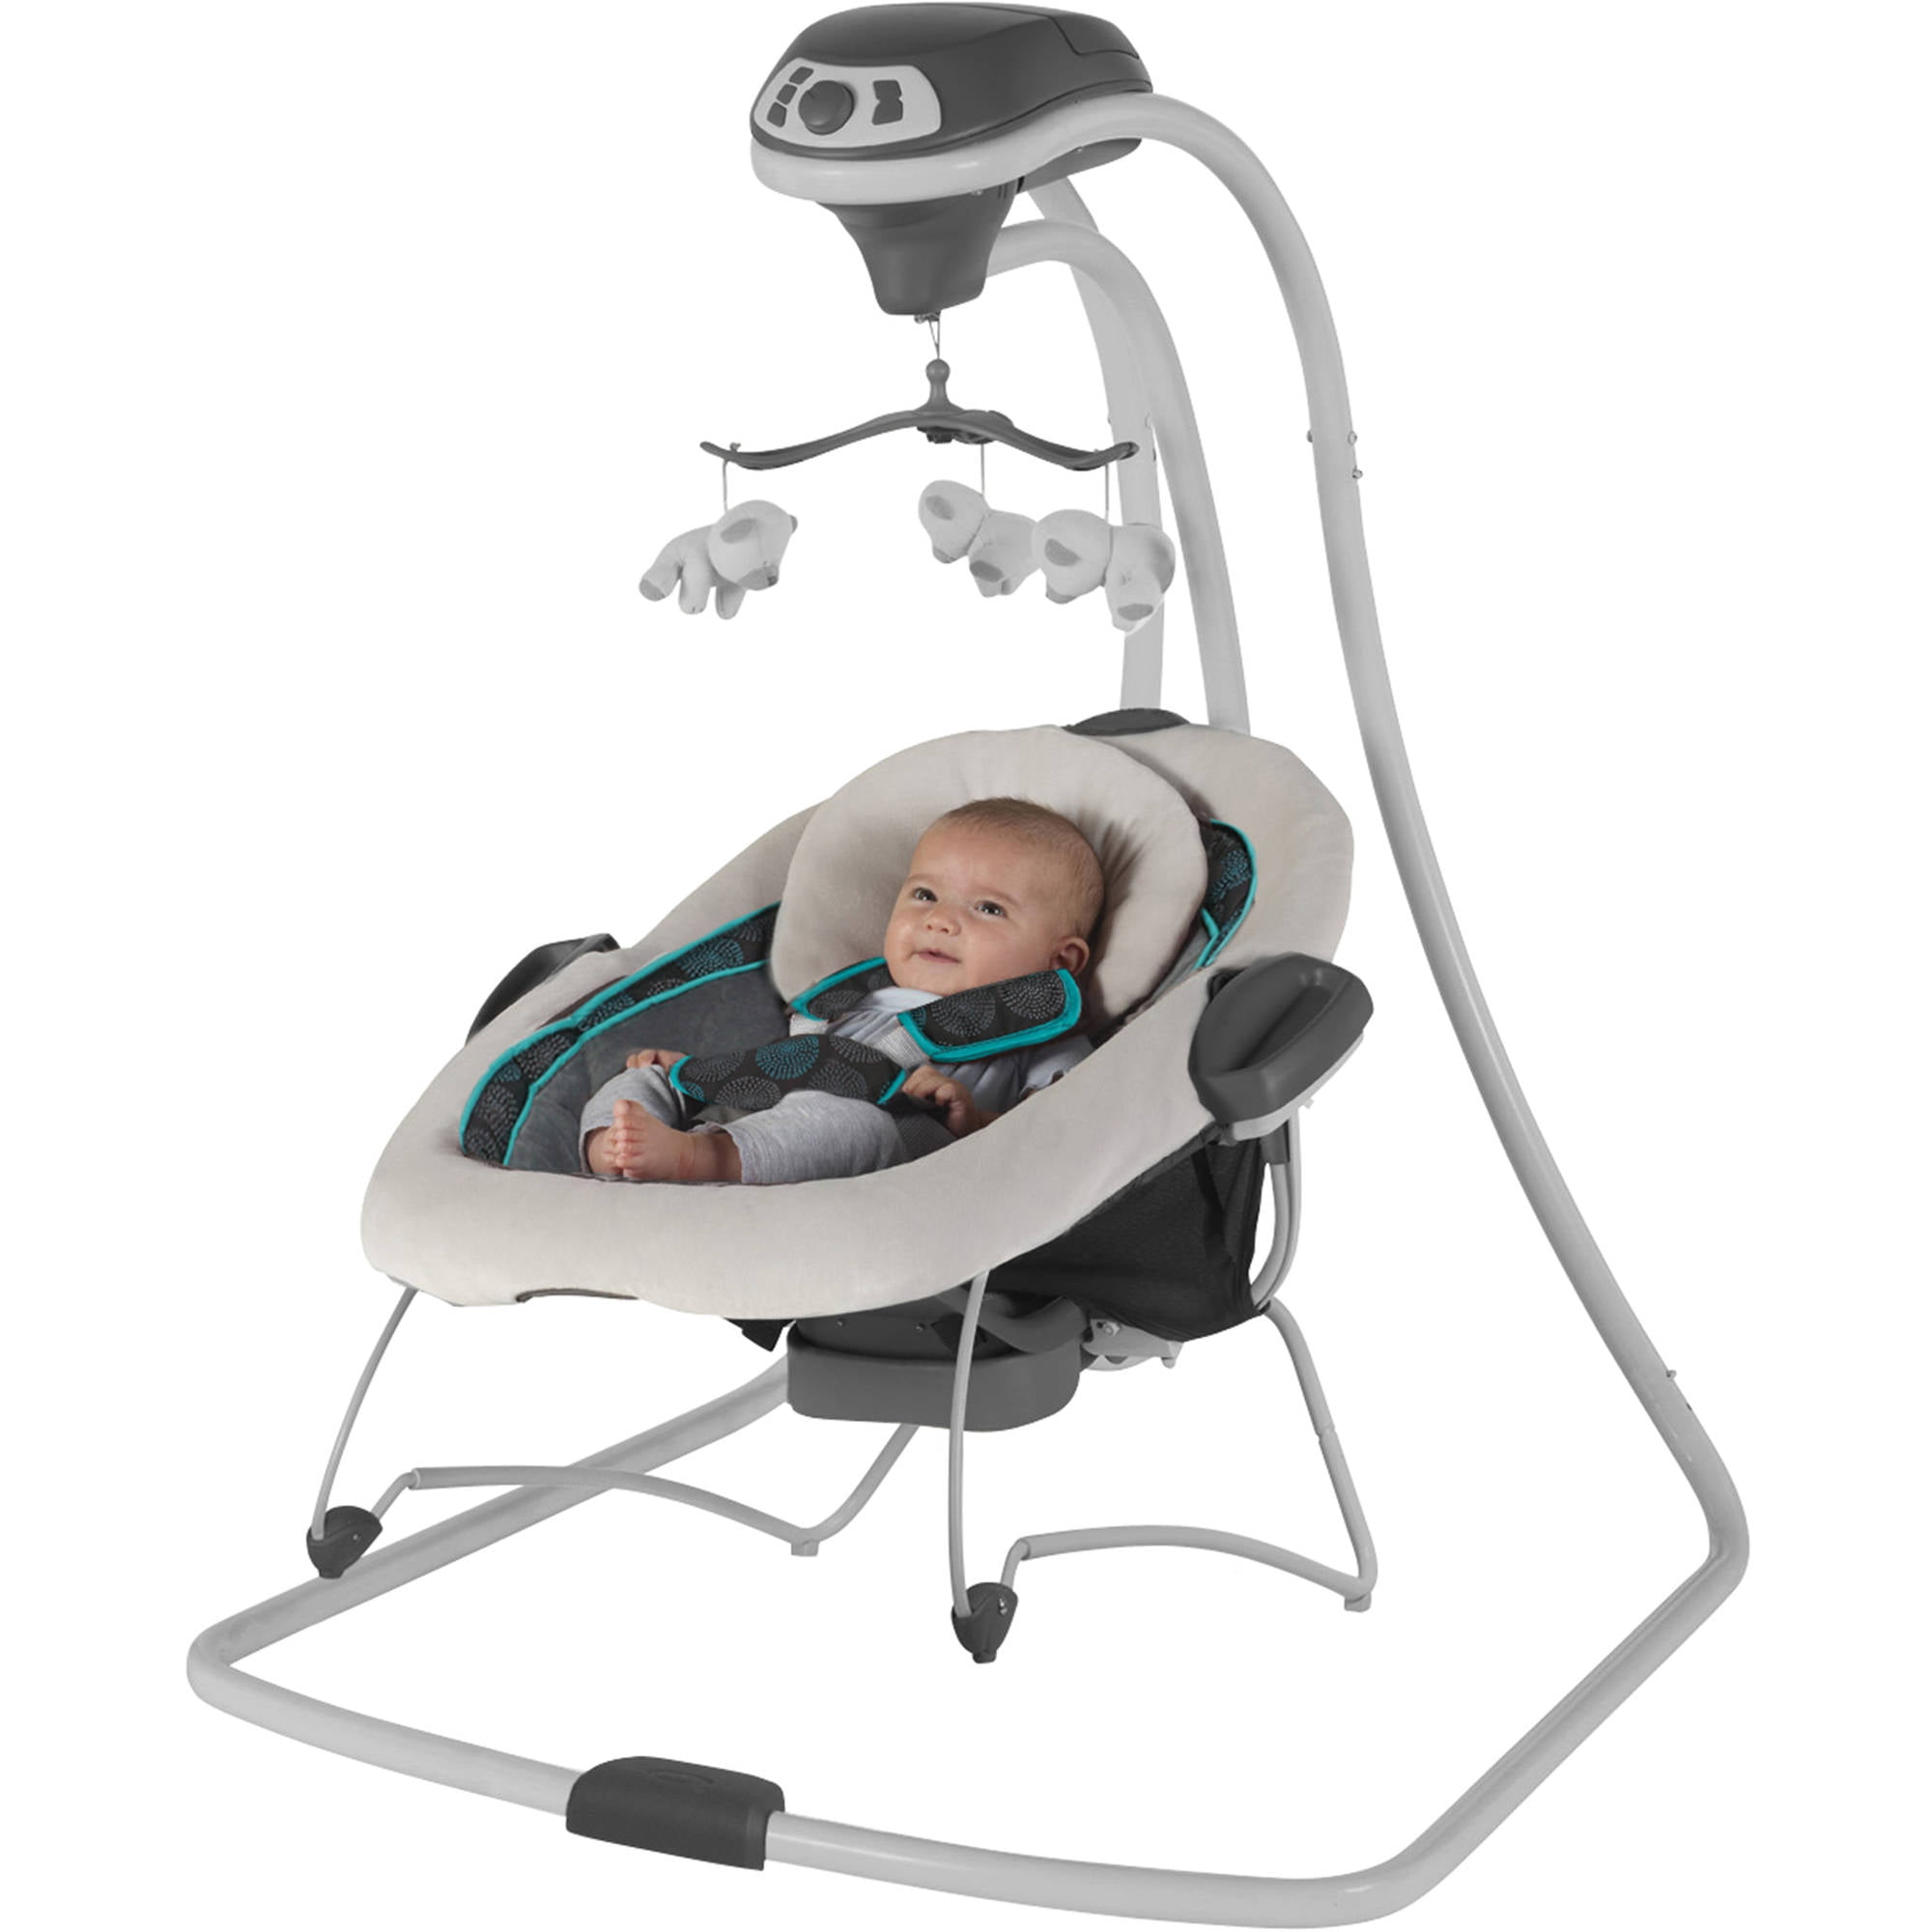 Graco Duetconnect Swing Baby Bouncer Bristol Removable